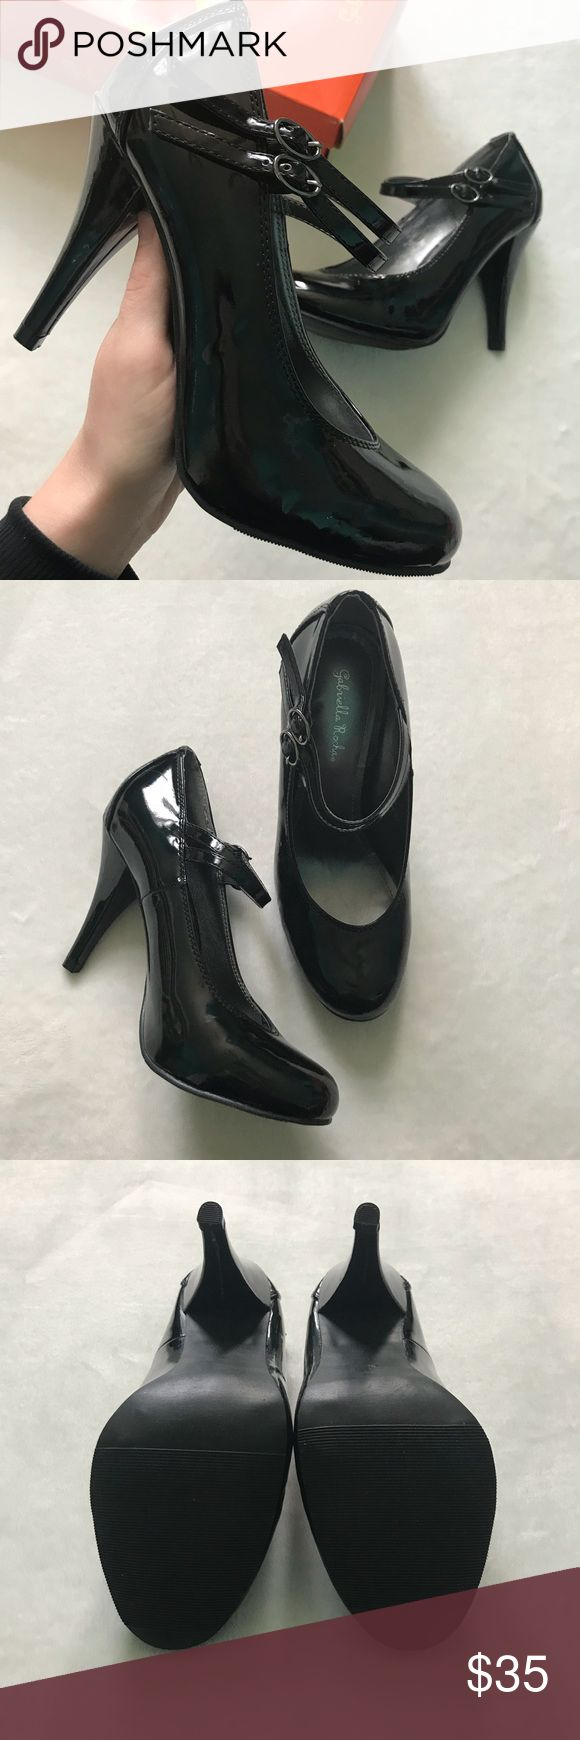 NEW Gabriella Rocha Black Sutton Heels These heels are a shiny black, with double buckle straps across the front.  A comfy and quality heel!  • Brand New WITH Original Box • Closed Toe • Size: 8  • Color: Black Patent Shoes Heels